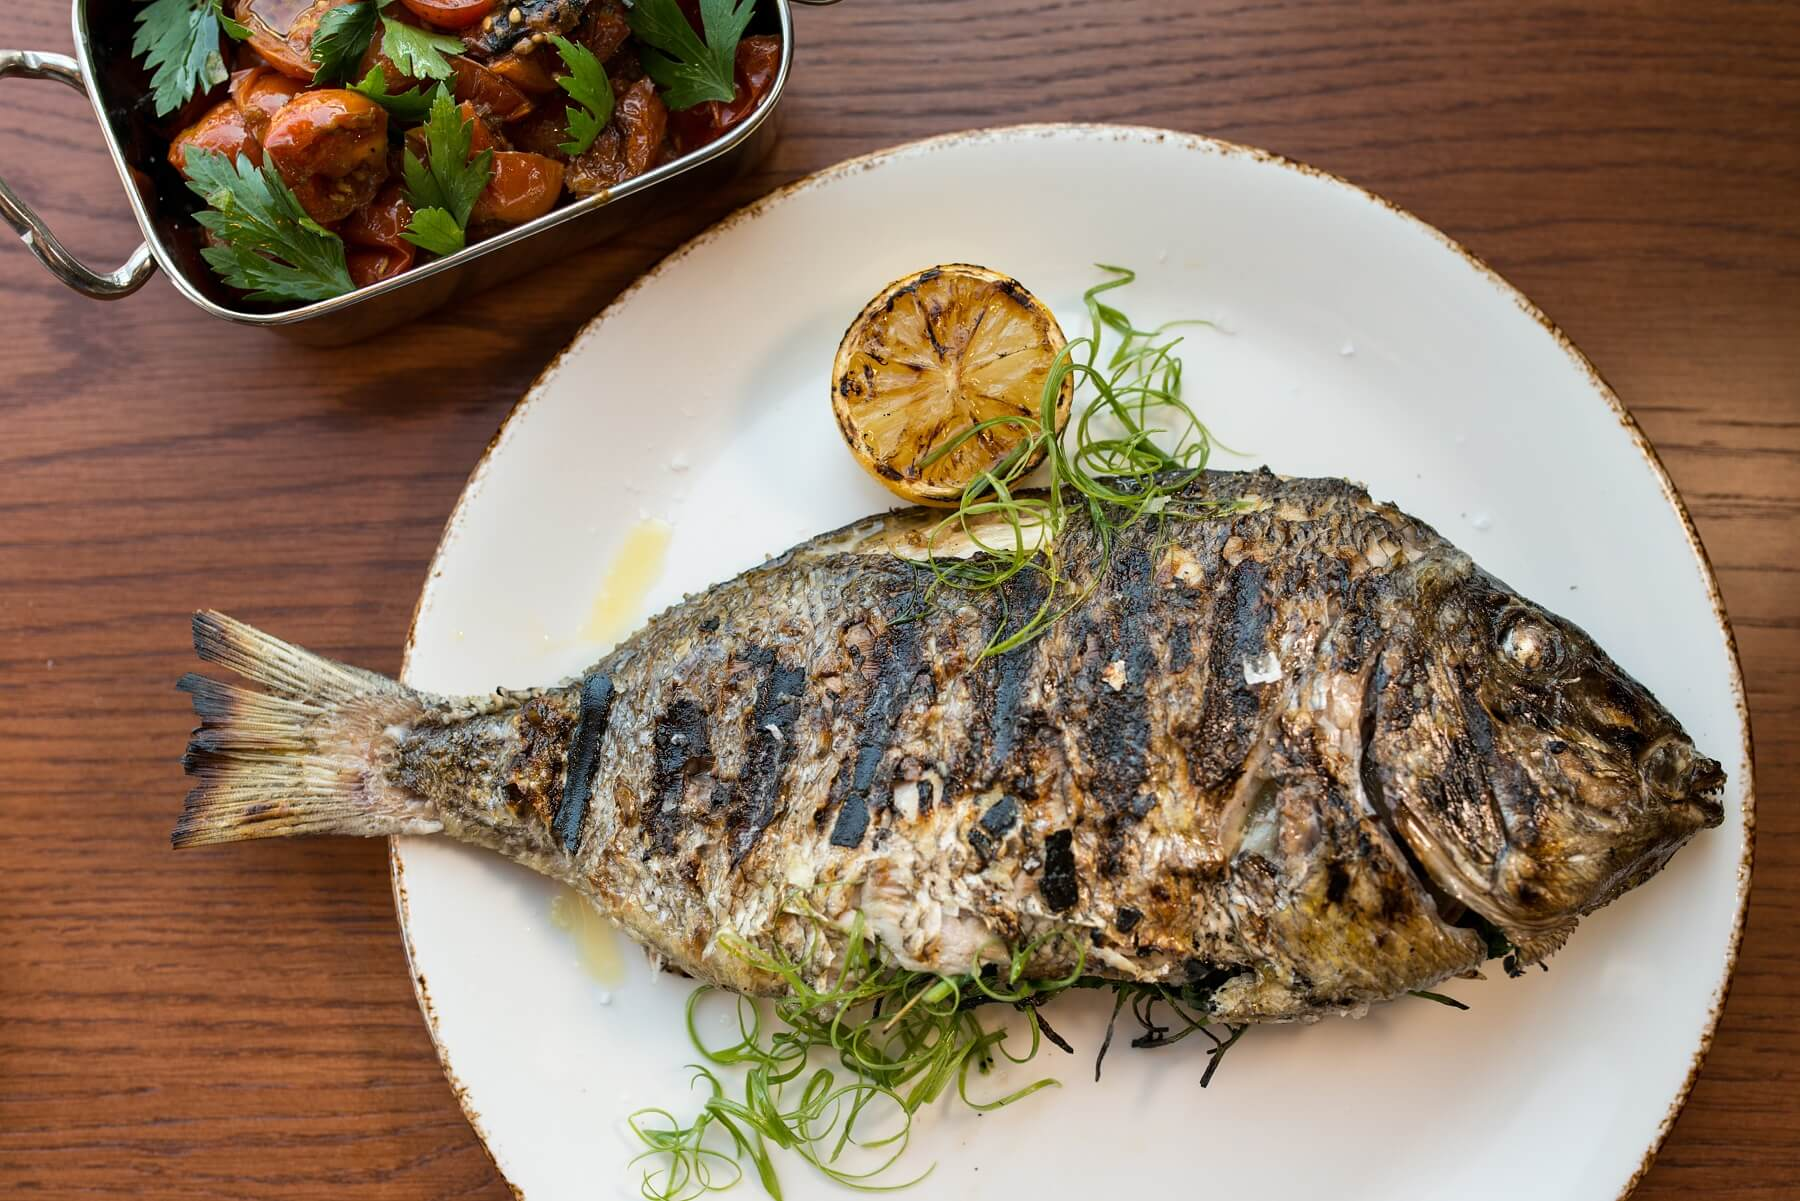 Donetto's whole-roasted fish with lemon and herbs is what dreams are made of. Image: Mia Yakel